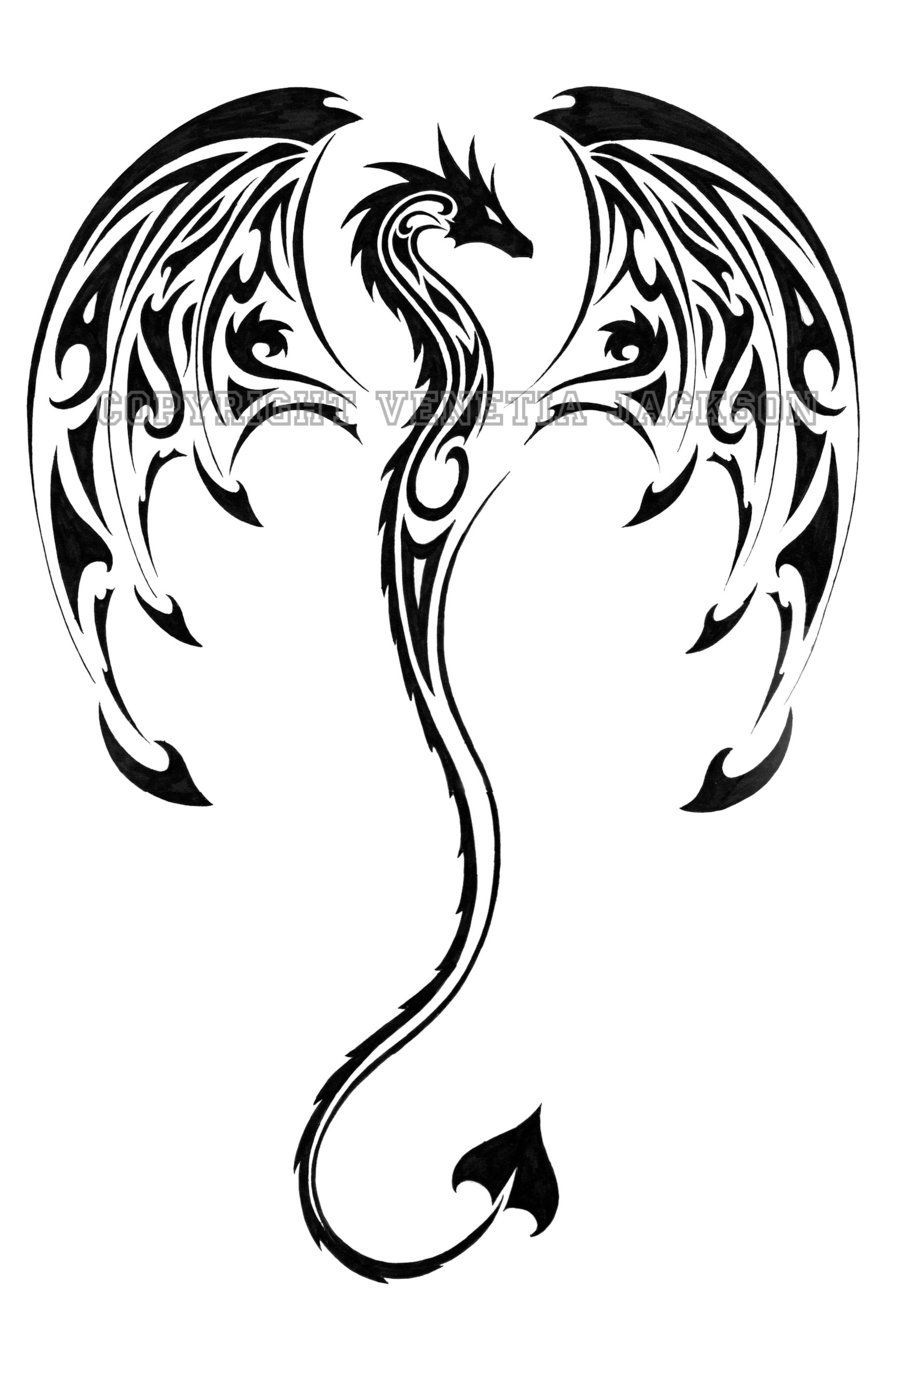 dragon outline simple dragon outline free download on clipartmag dragon outline